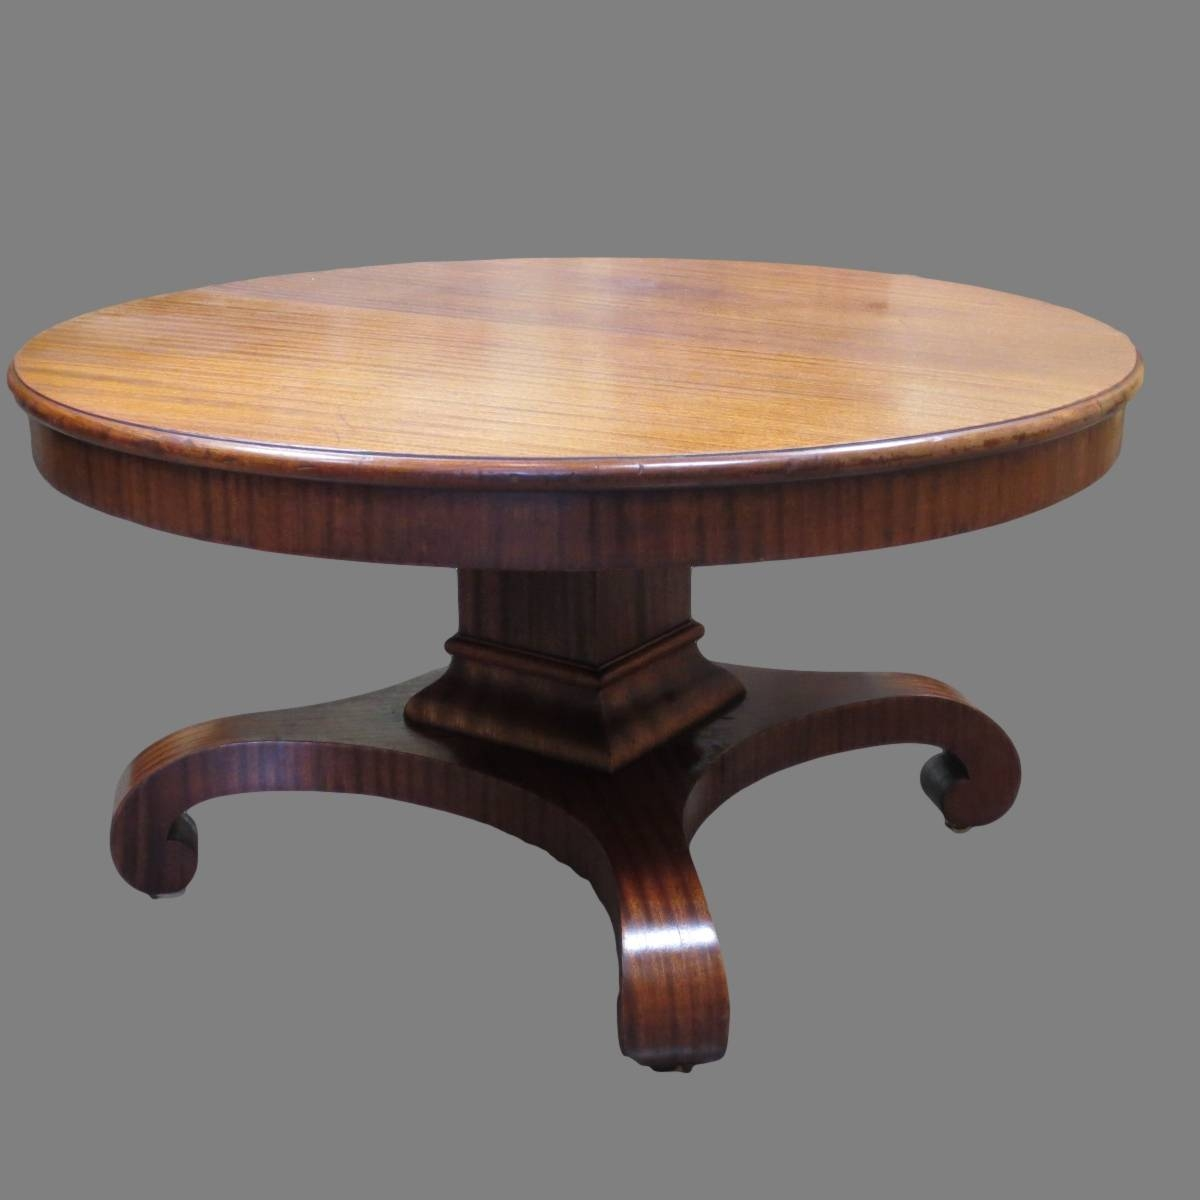 Antique Coffee Tables, Antique Furniture, Antique Coffeetables within Round Oak Coffee Tables (Image 2 of 30)